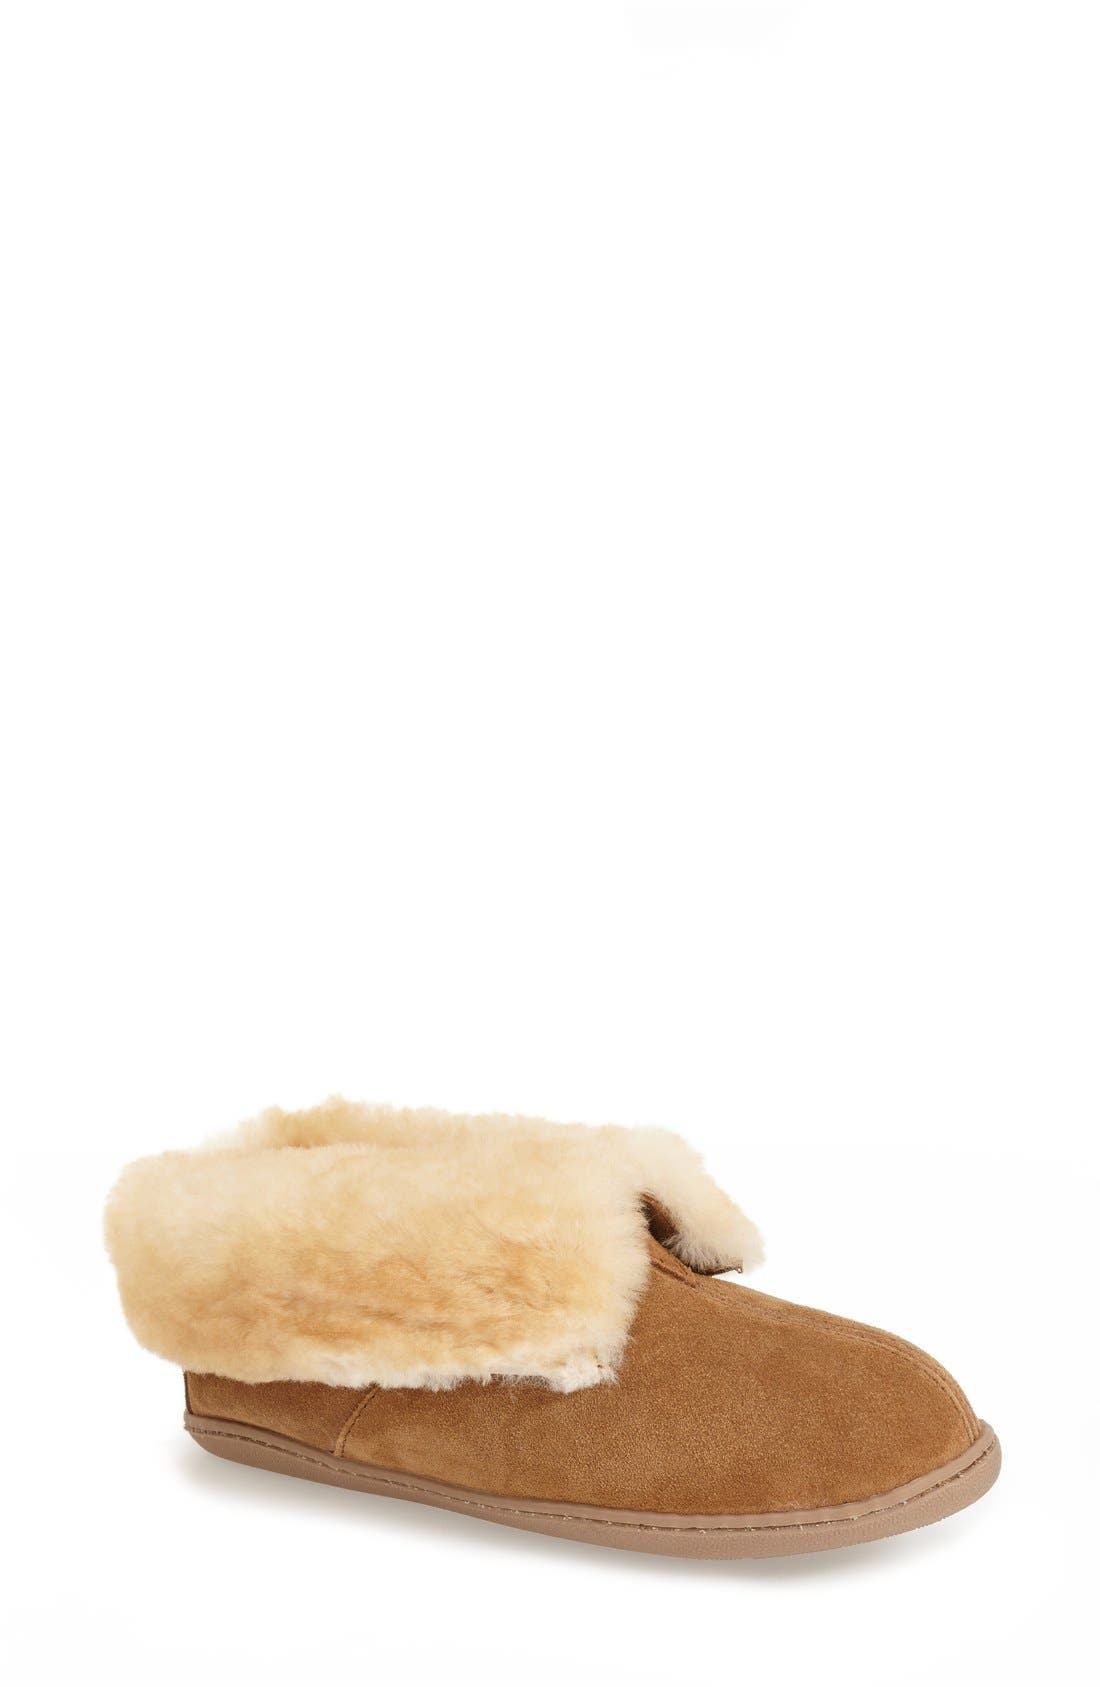 MINNETONKA, Sheepskin Slipper Bootie, Main thumbnail 1, color, TAN SUEDE